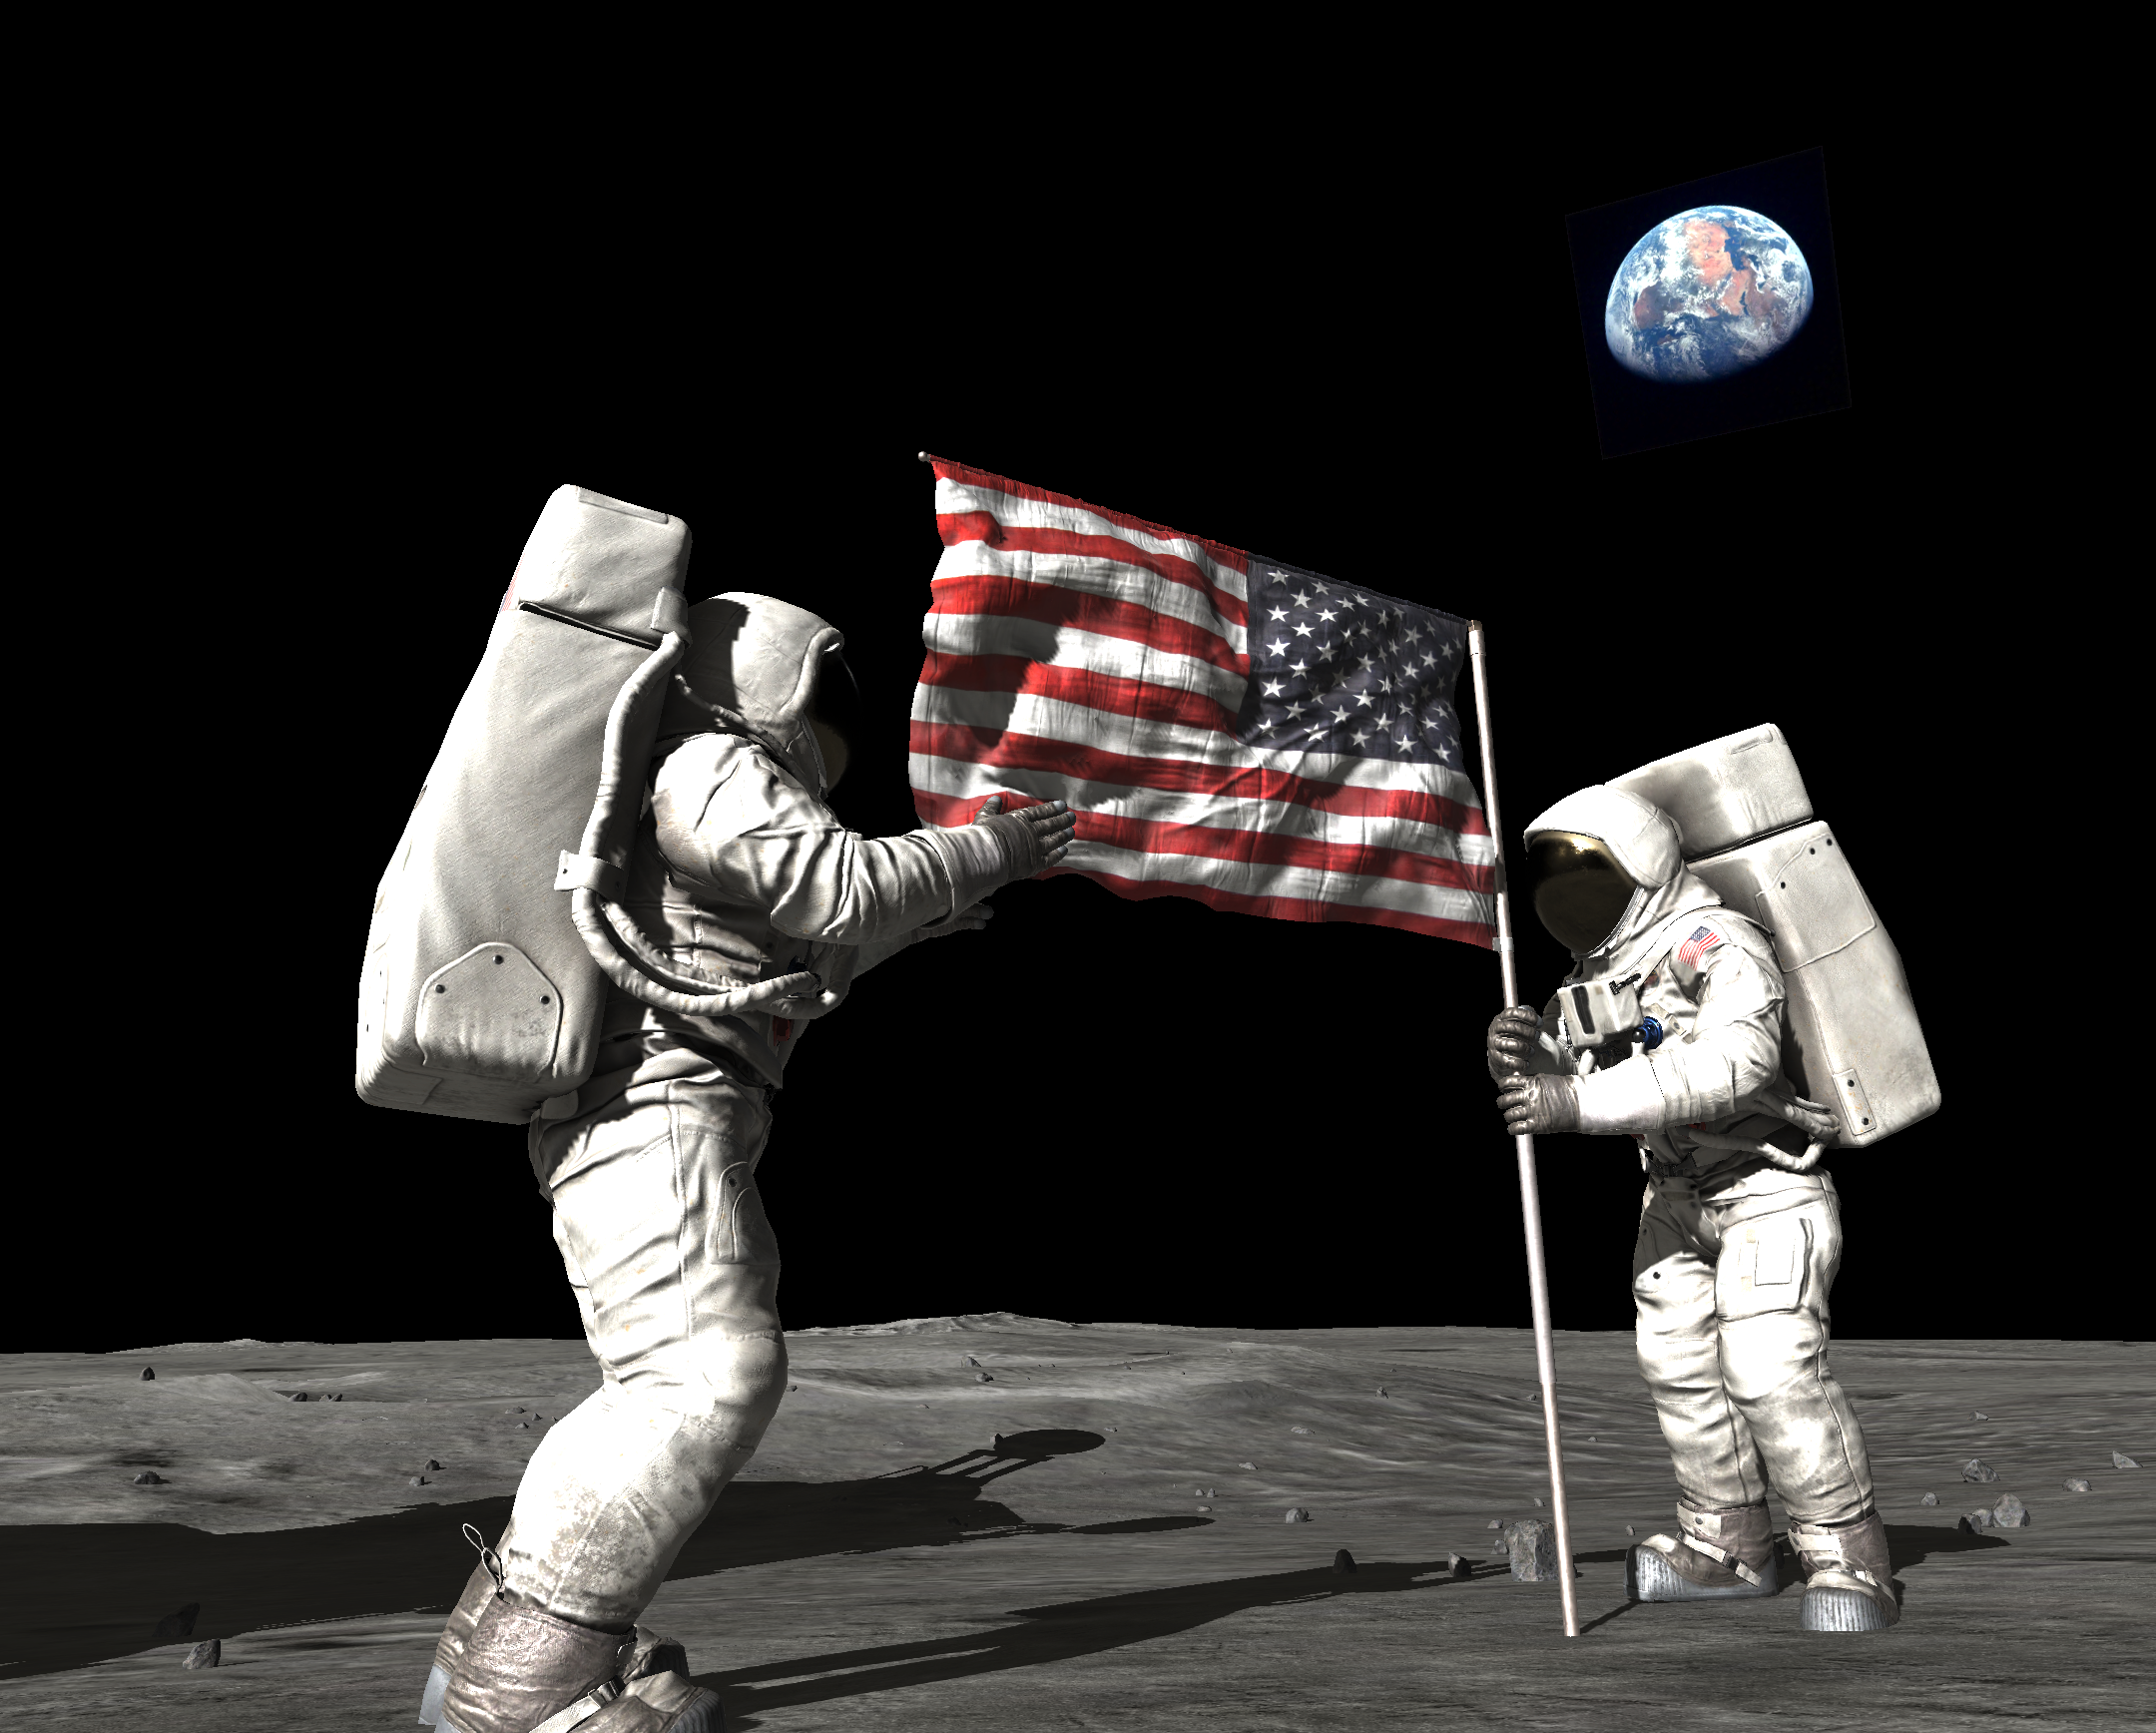 We Came in Peace: 50 Years on the Moon